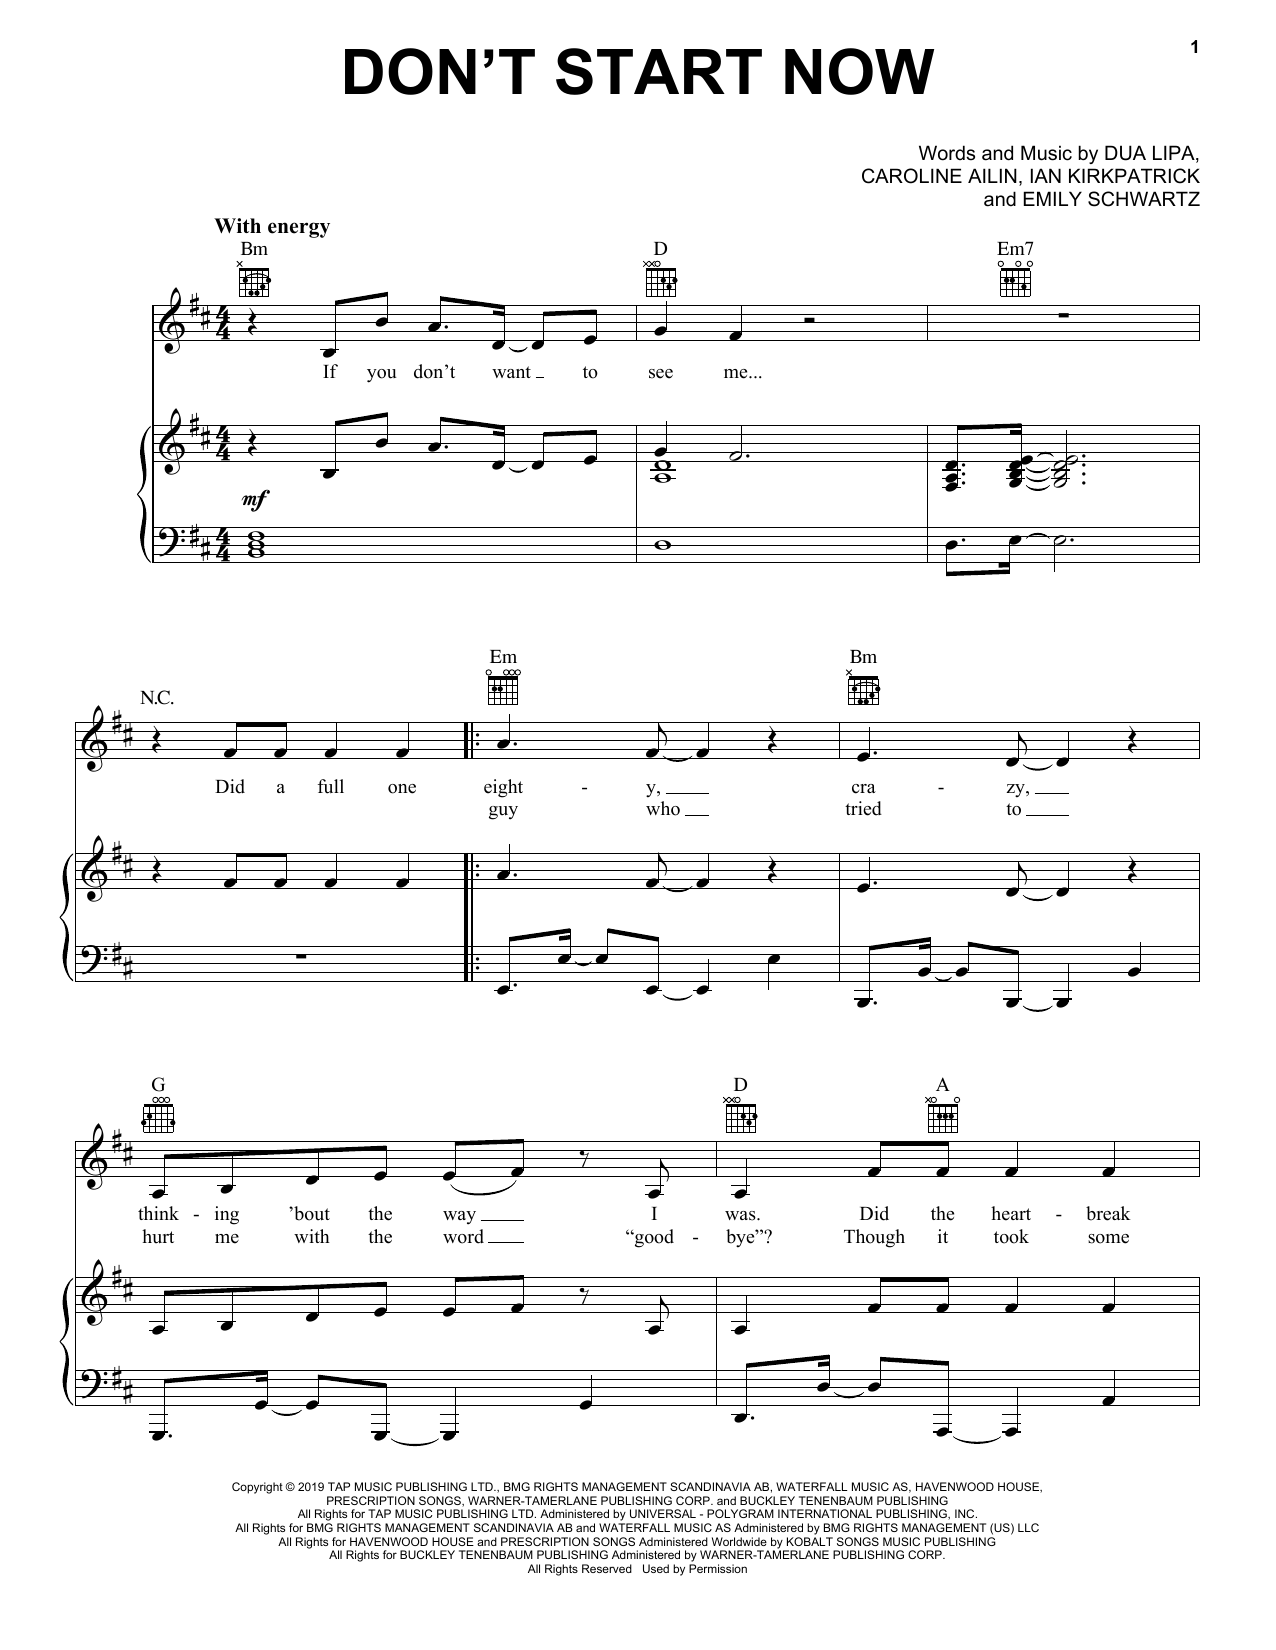 Dua Lipa Don't Start Now sheet music notes and chords. Download Printable PDF.